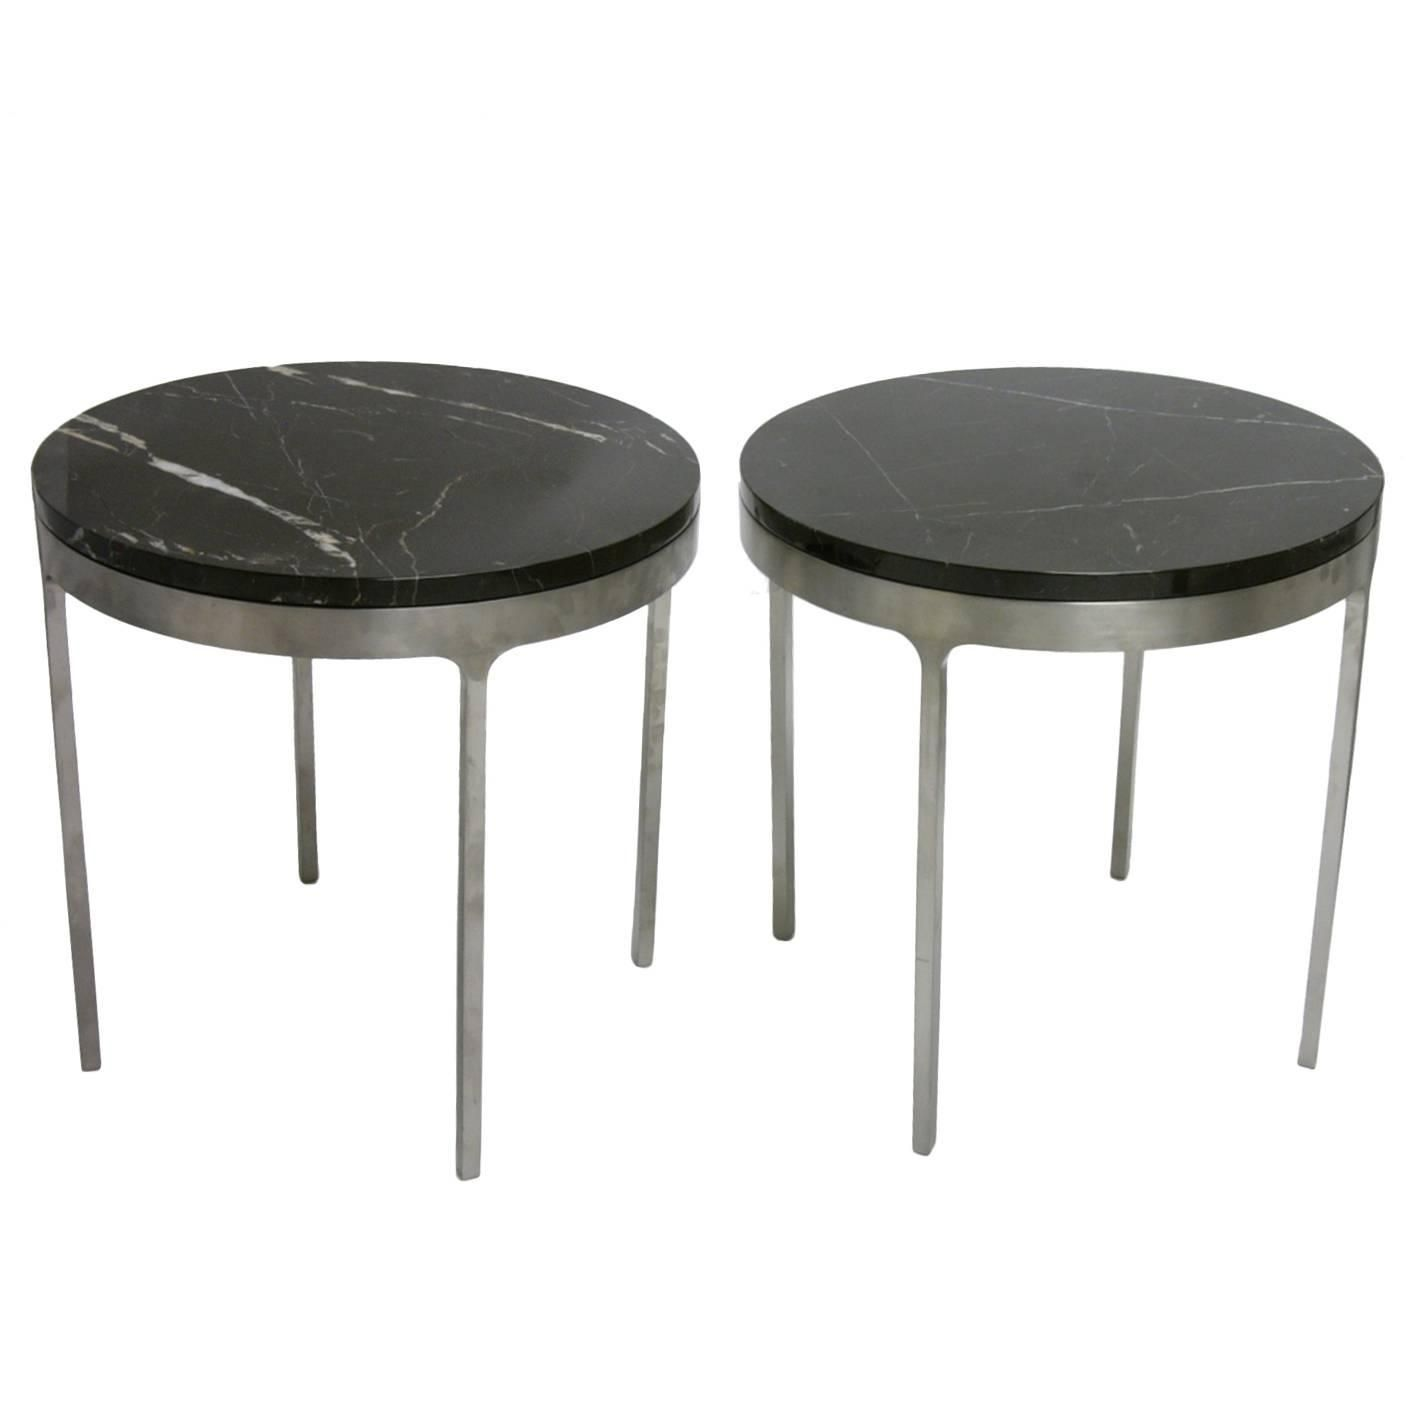 Pair Of Nicos Zographos Stainless Steel Tables With Belgian Black Marble Top My 1stdibs Favorites Steel Table Stainless Steel Table Marble Top